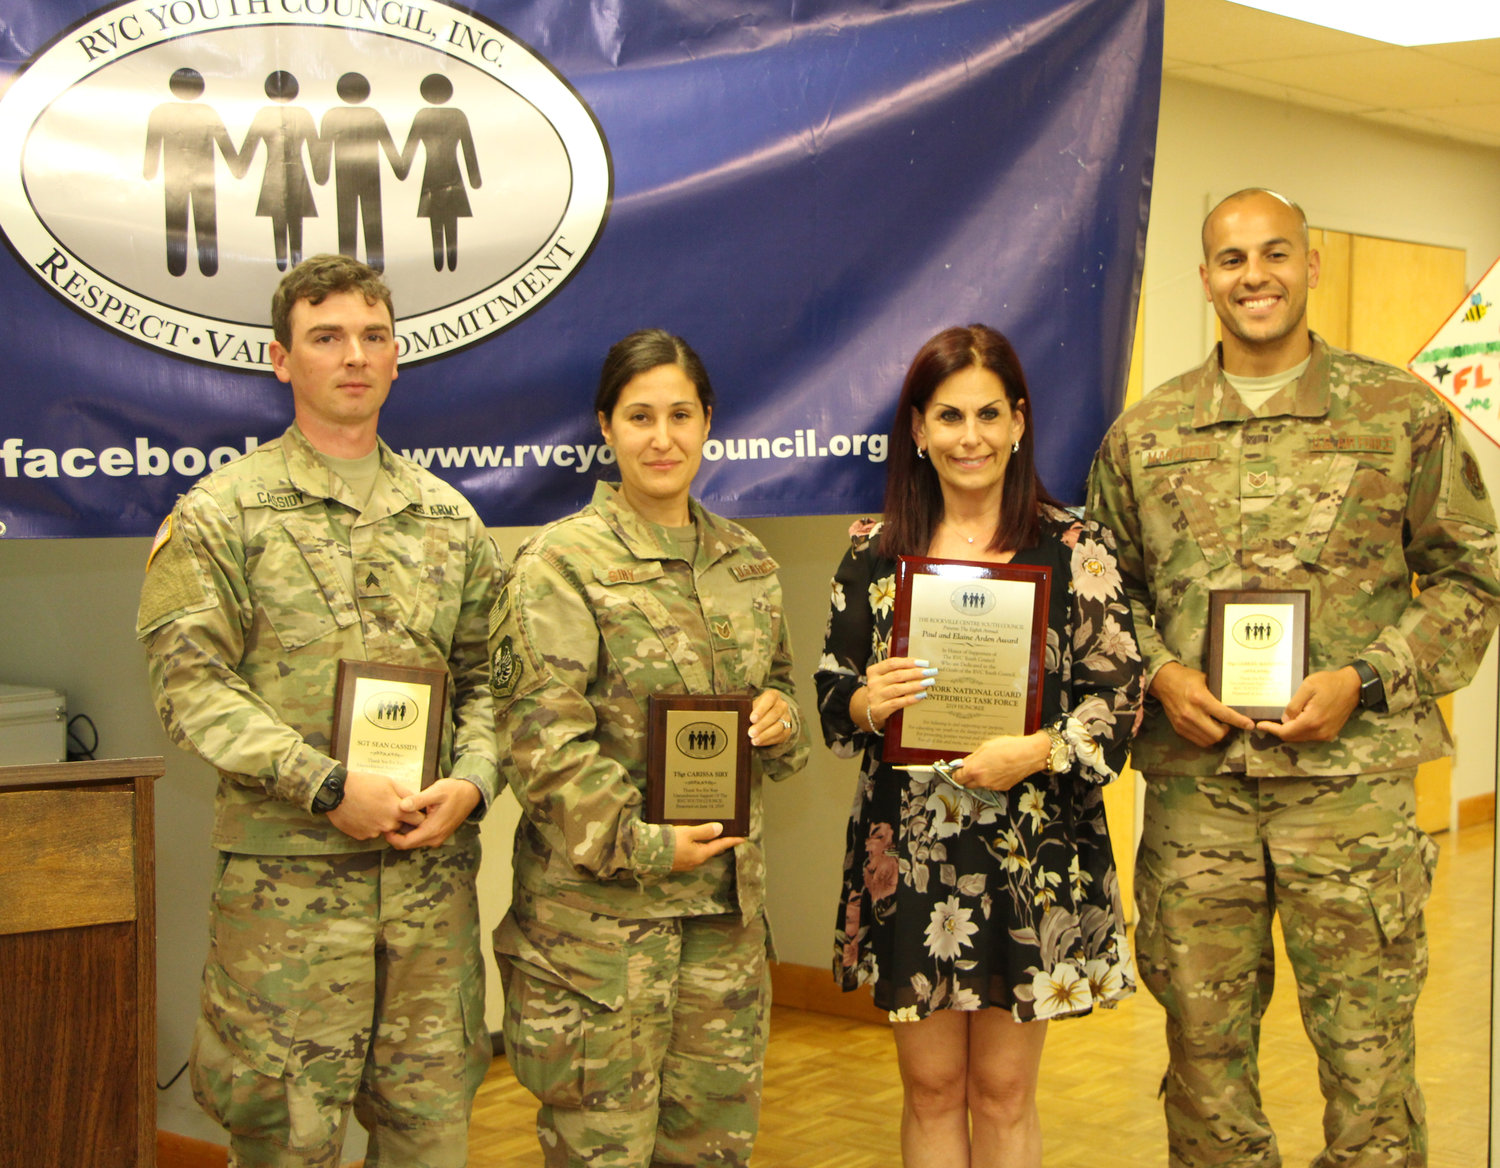 Sgt. Sean Cassidy, from left, TSgt. Carissa Siry and SSgt. Gabriel Marizueta, members of the New York National Guard Counterdrug Task Force, joined Andrea Connolly, who presented them with awards.